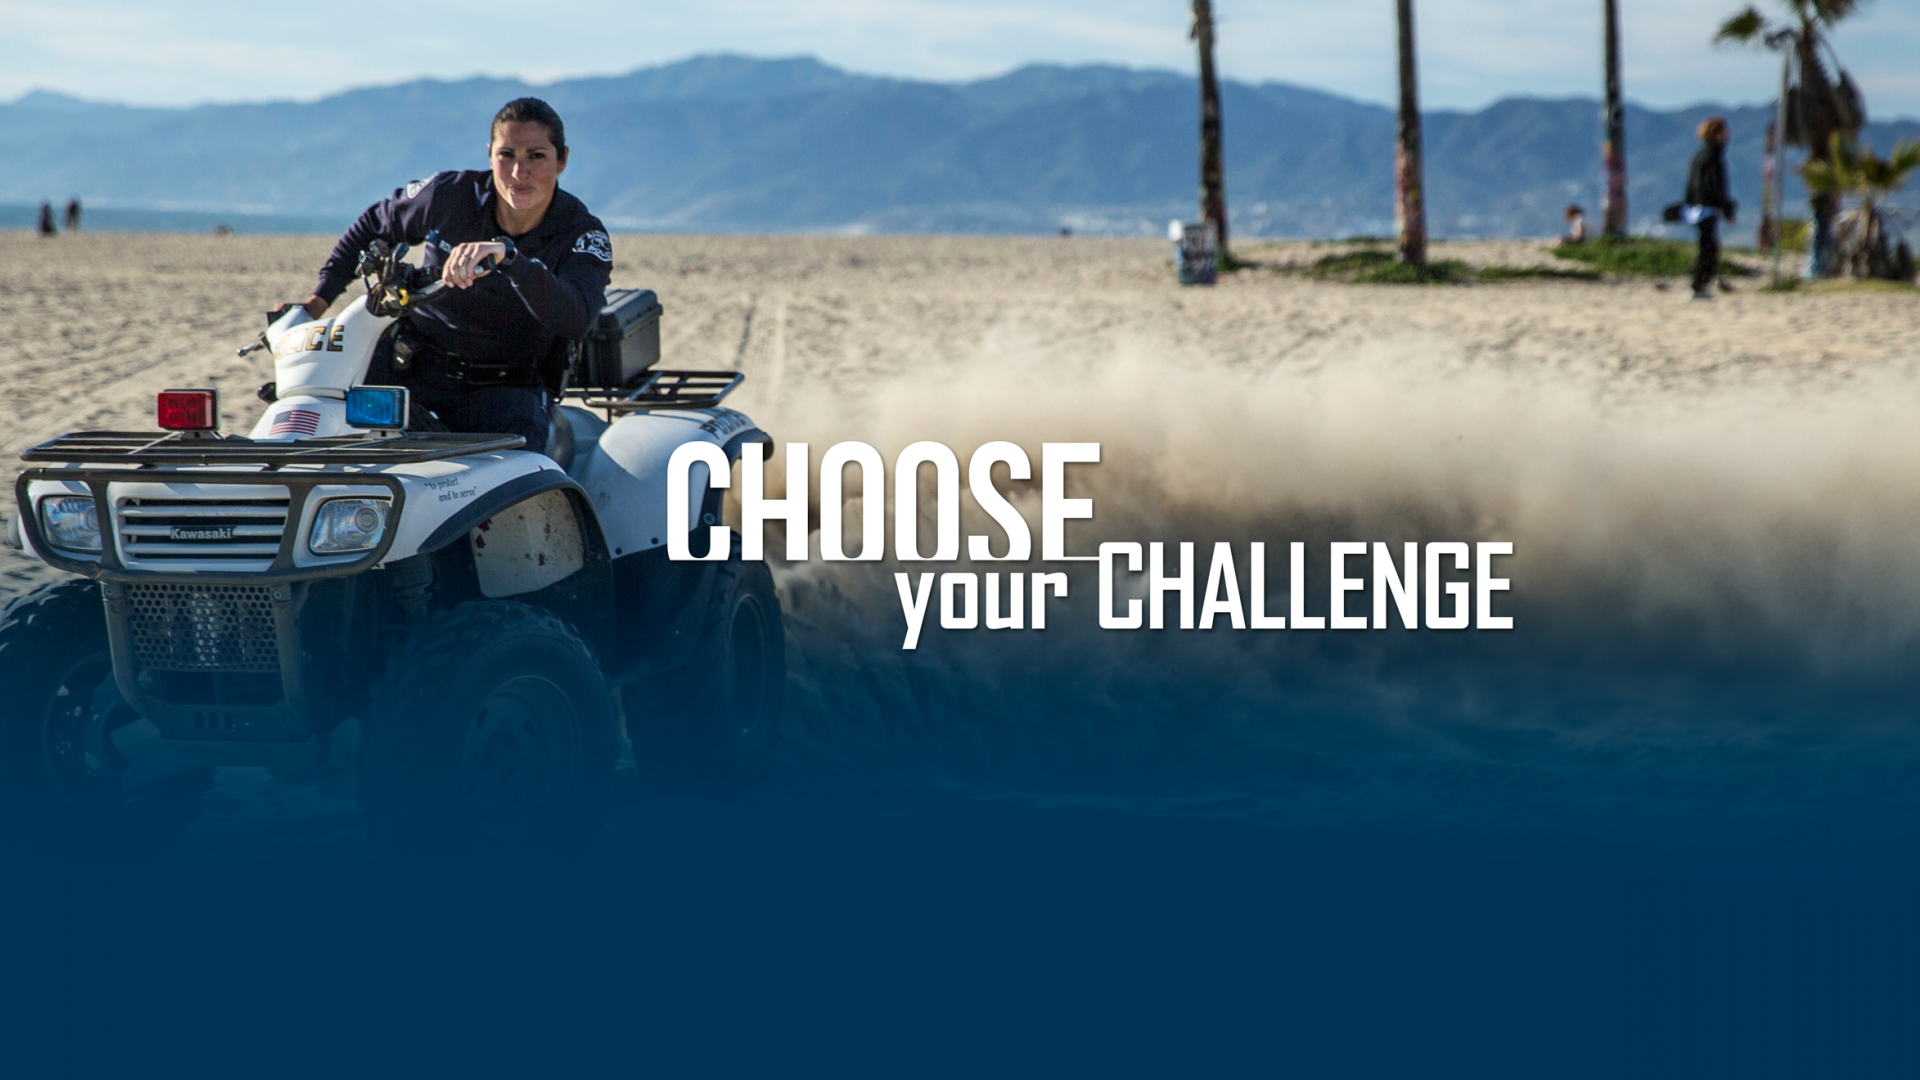 Female Officer riding ATV through sandy beach